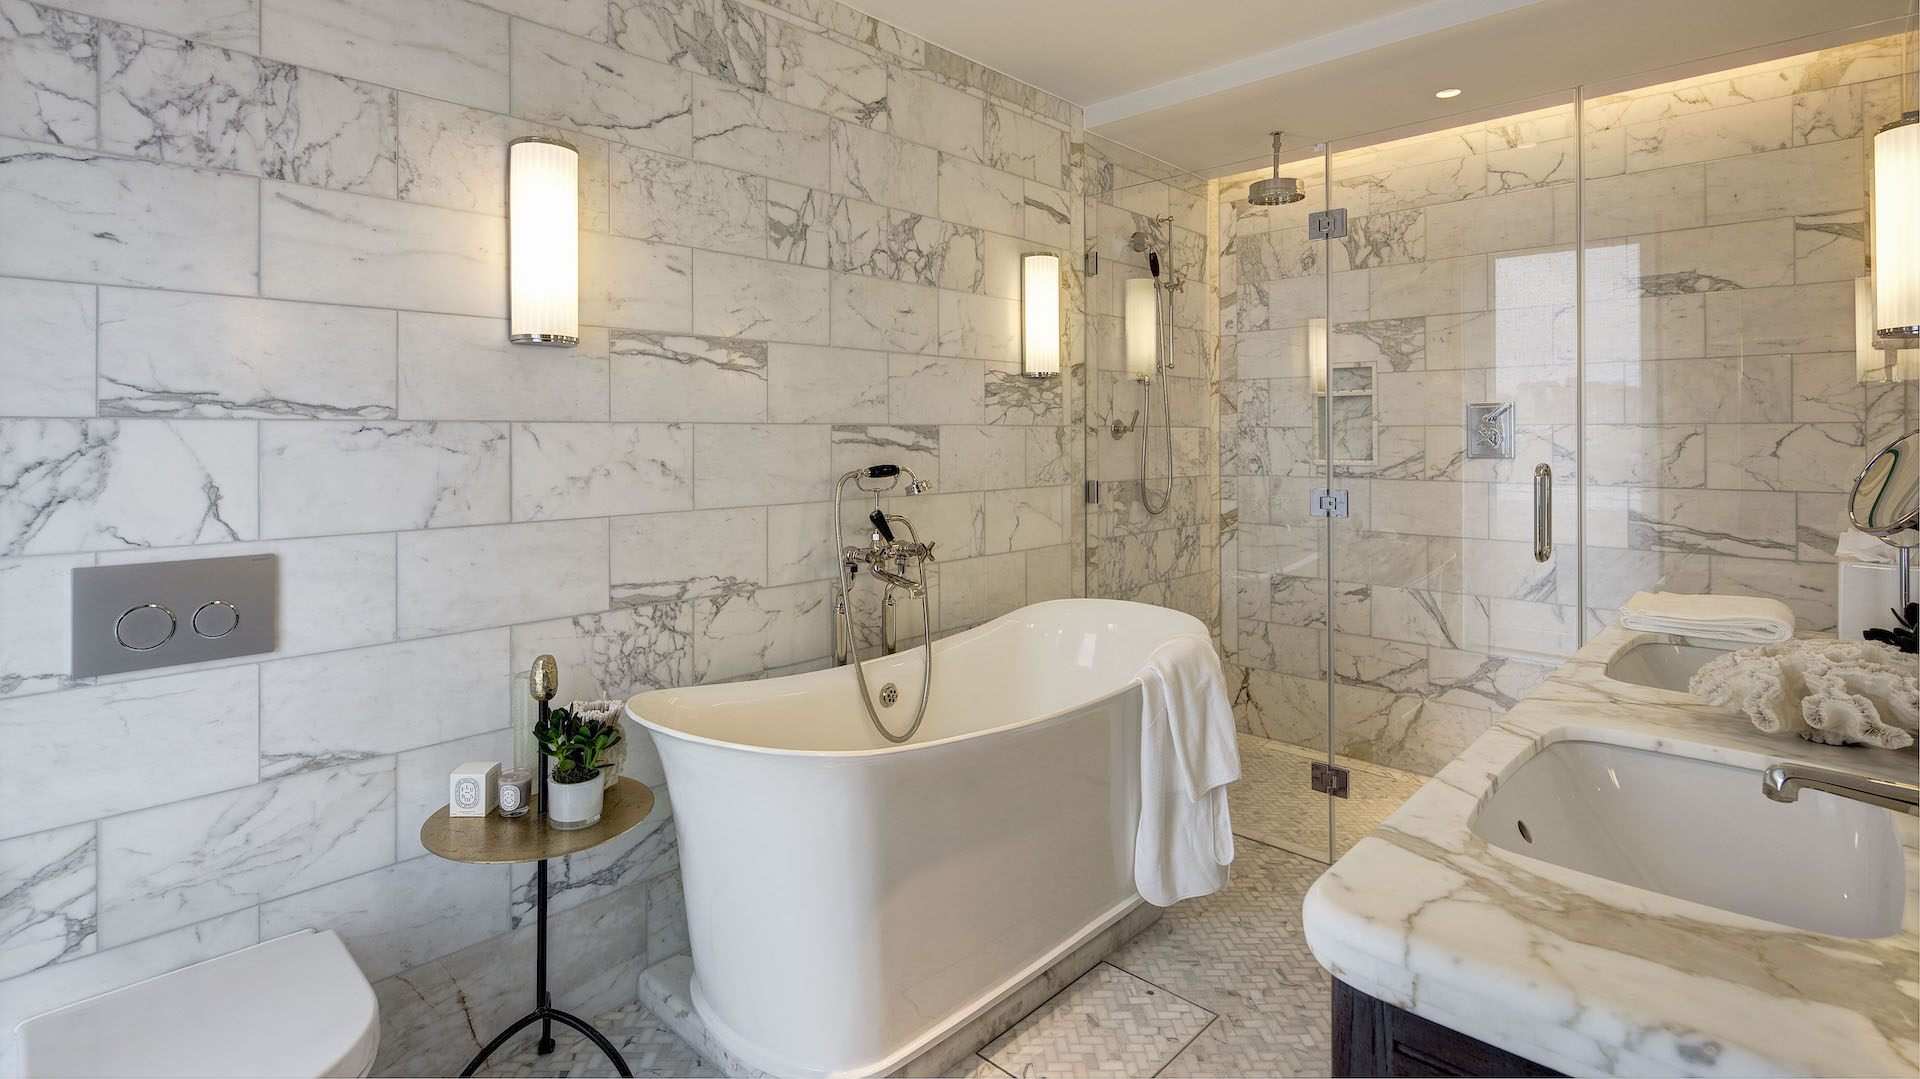 Beautiful white marble bathroom with deep, luxurious bathtub with walk-in shower in the corner.